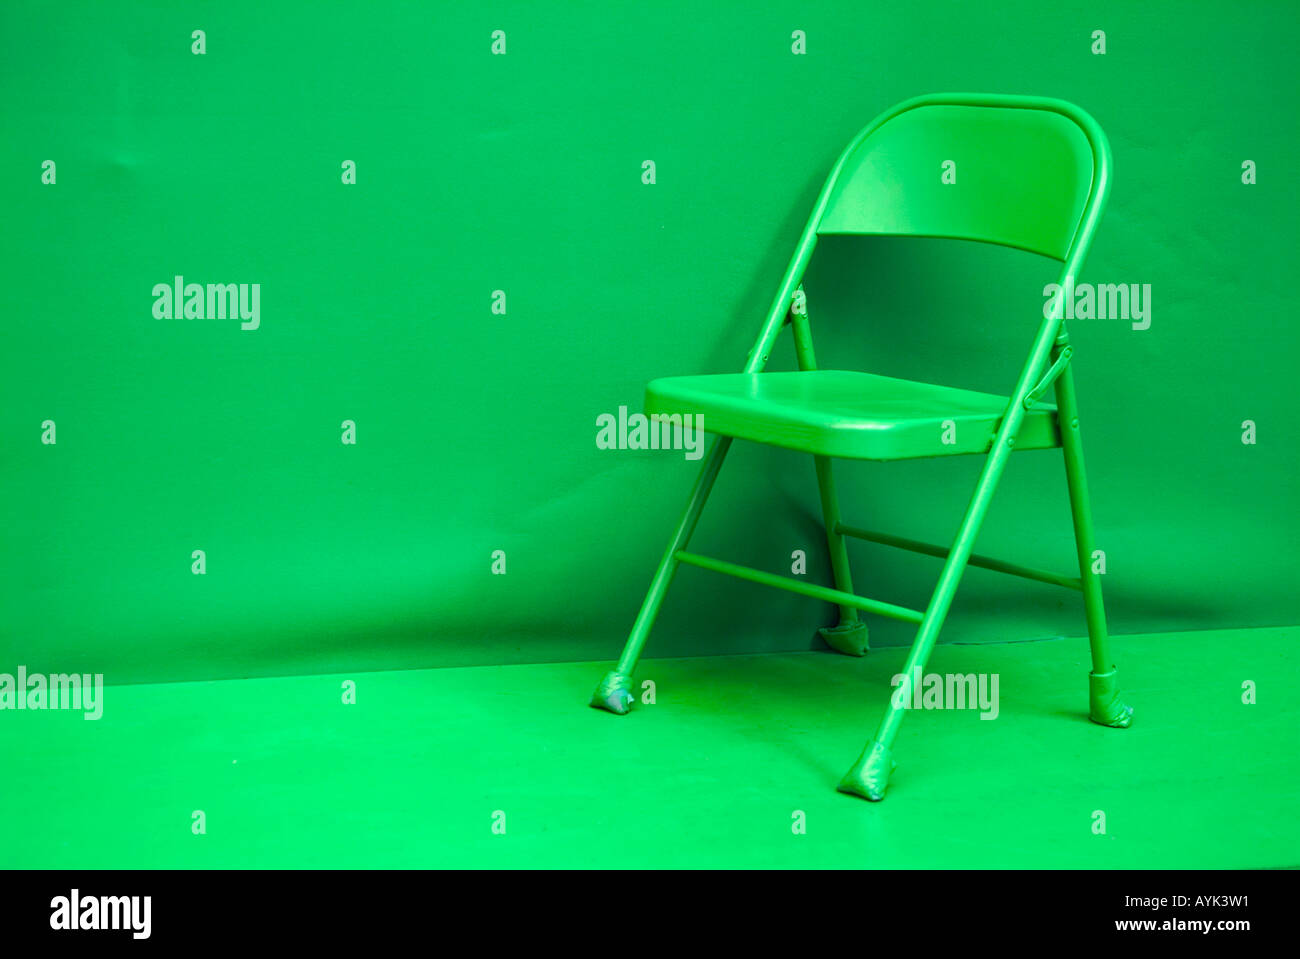 Outstanding Single Folding Chair Illustrating Concept Of Being Isolated Ncnpc Chair Design For Home Ncnpcorg